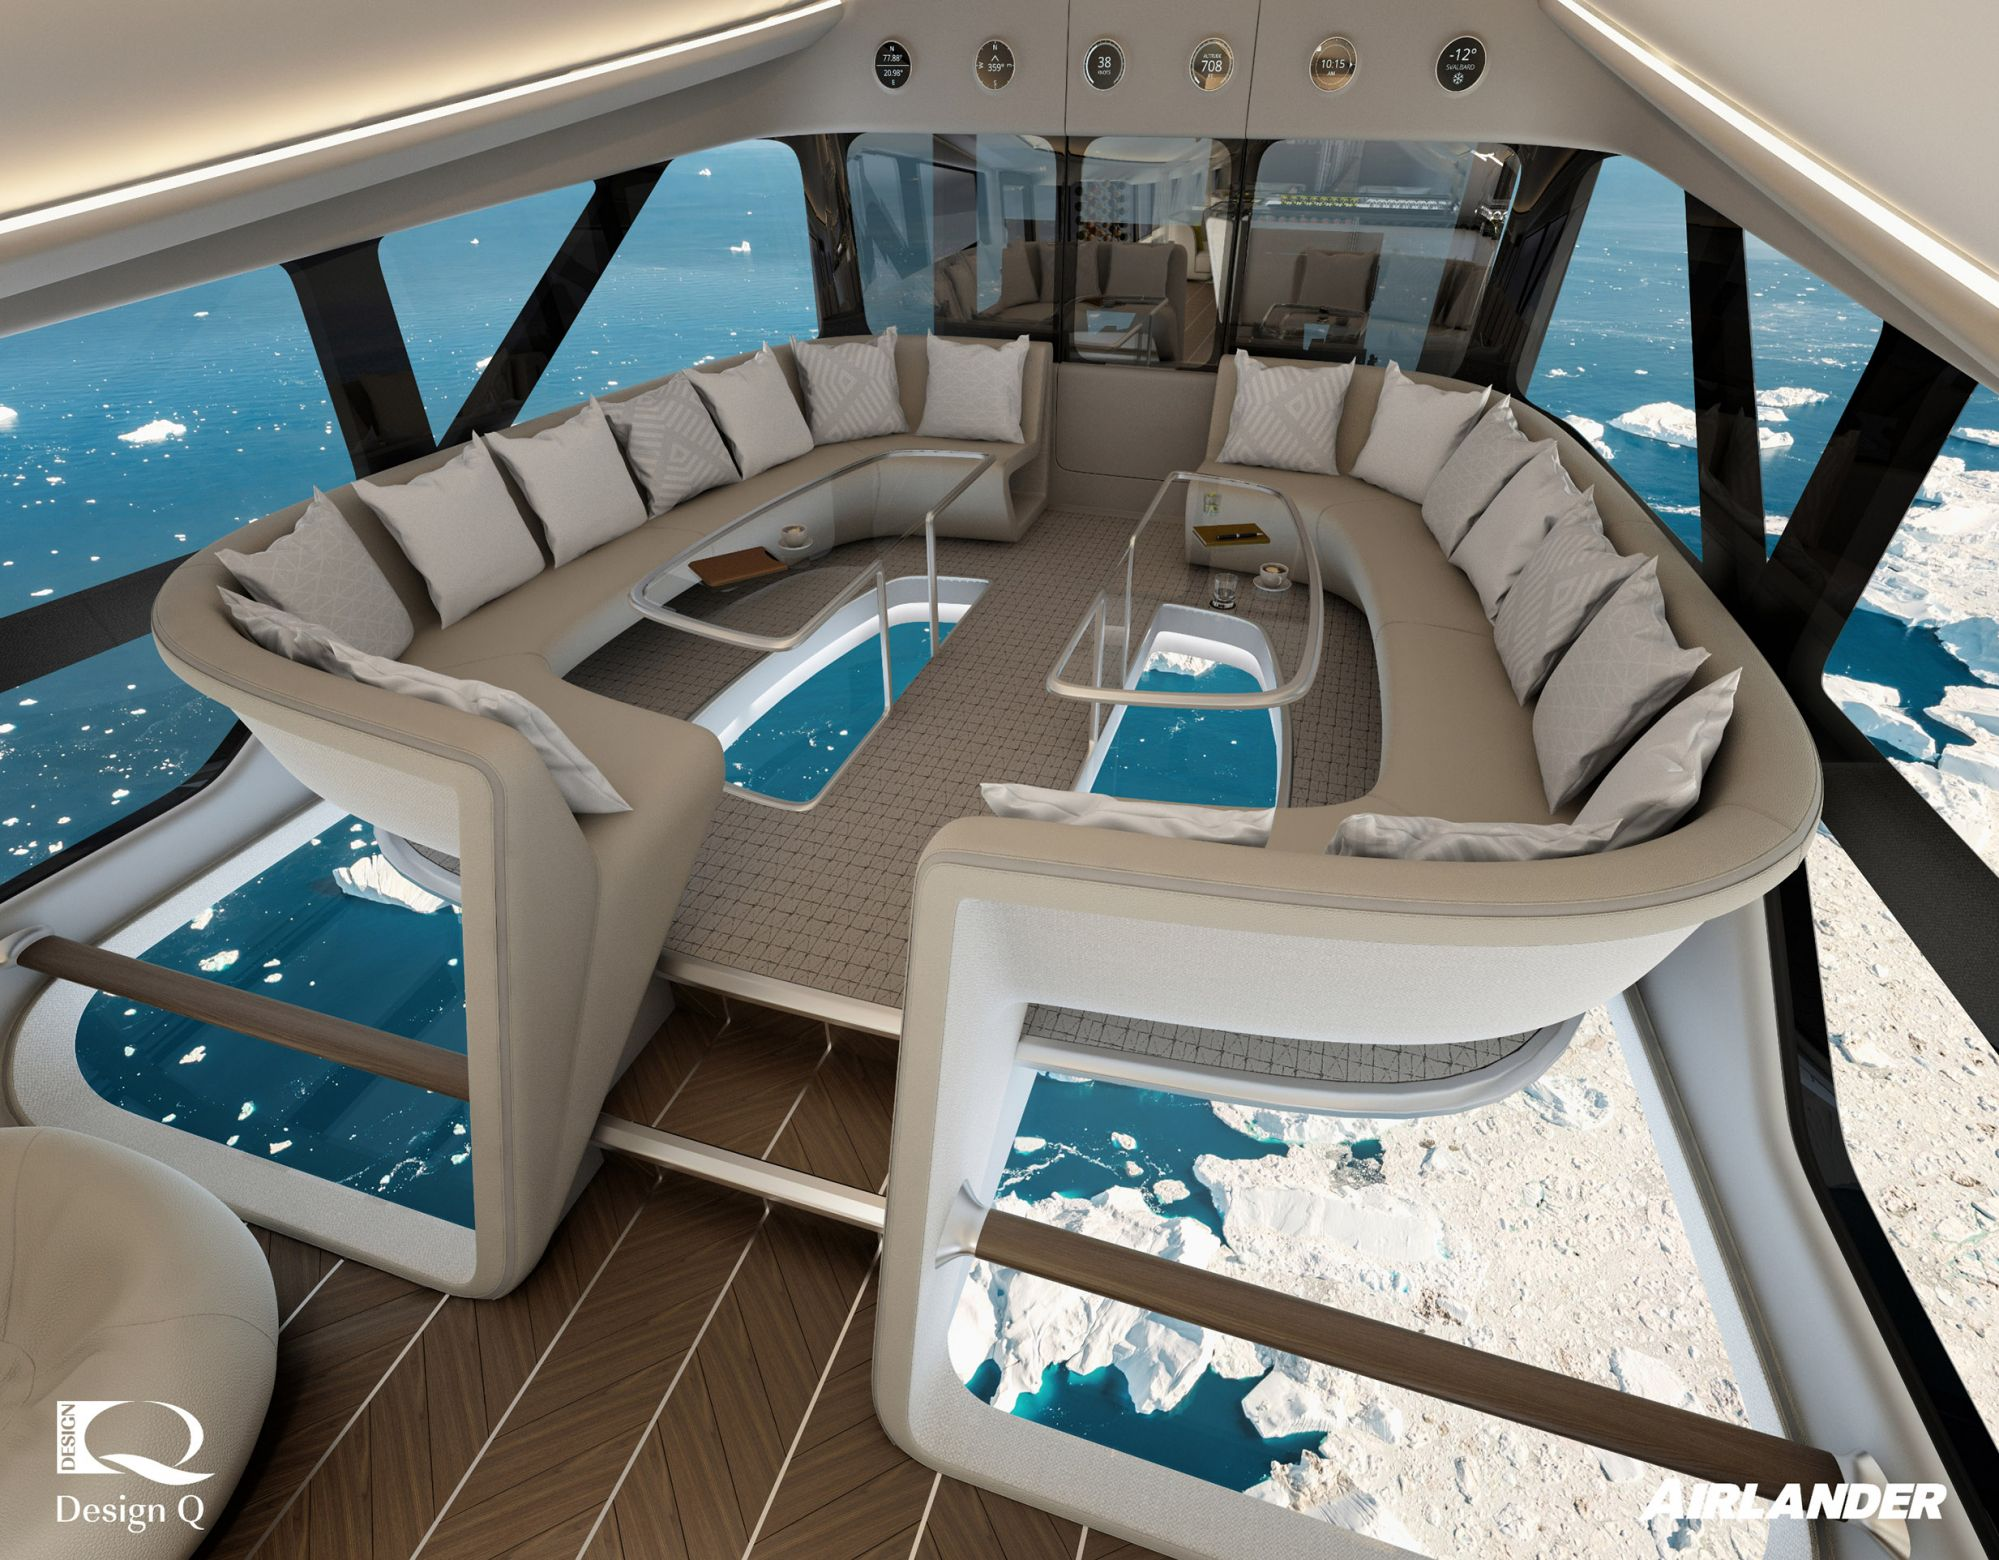 An Aircraft With A Glass-bottom Floor And En-suite Bedrooms?